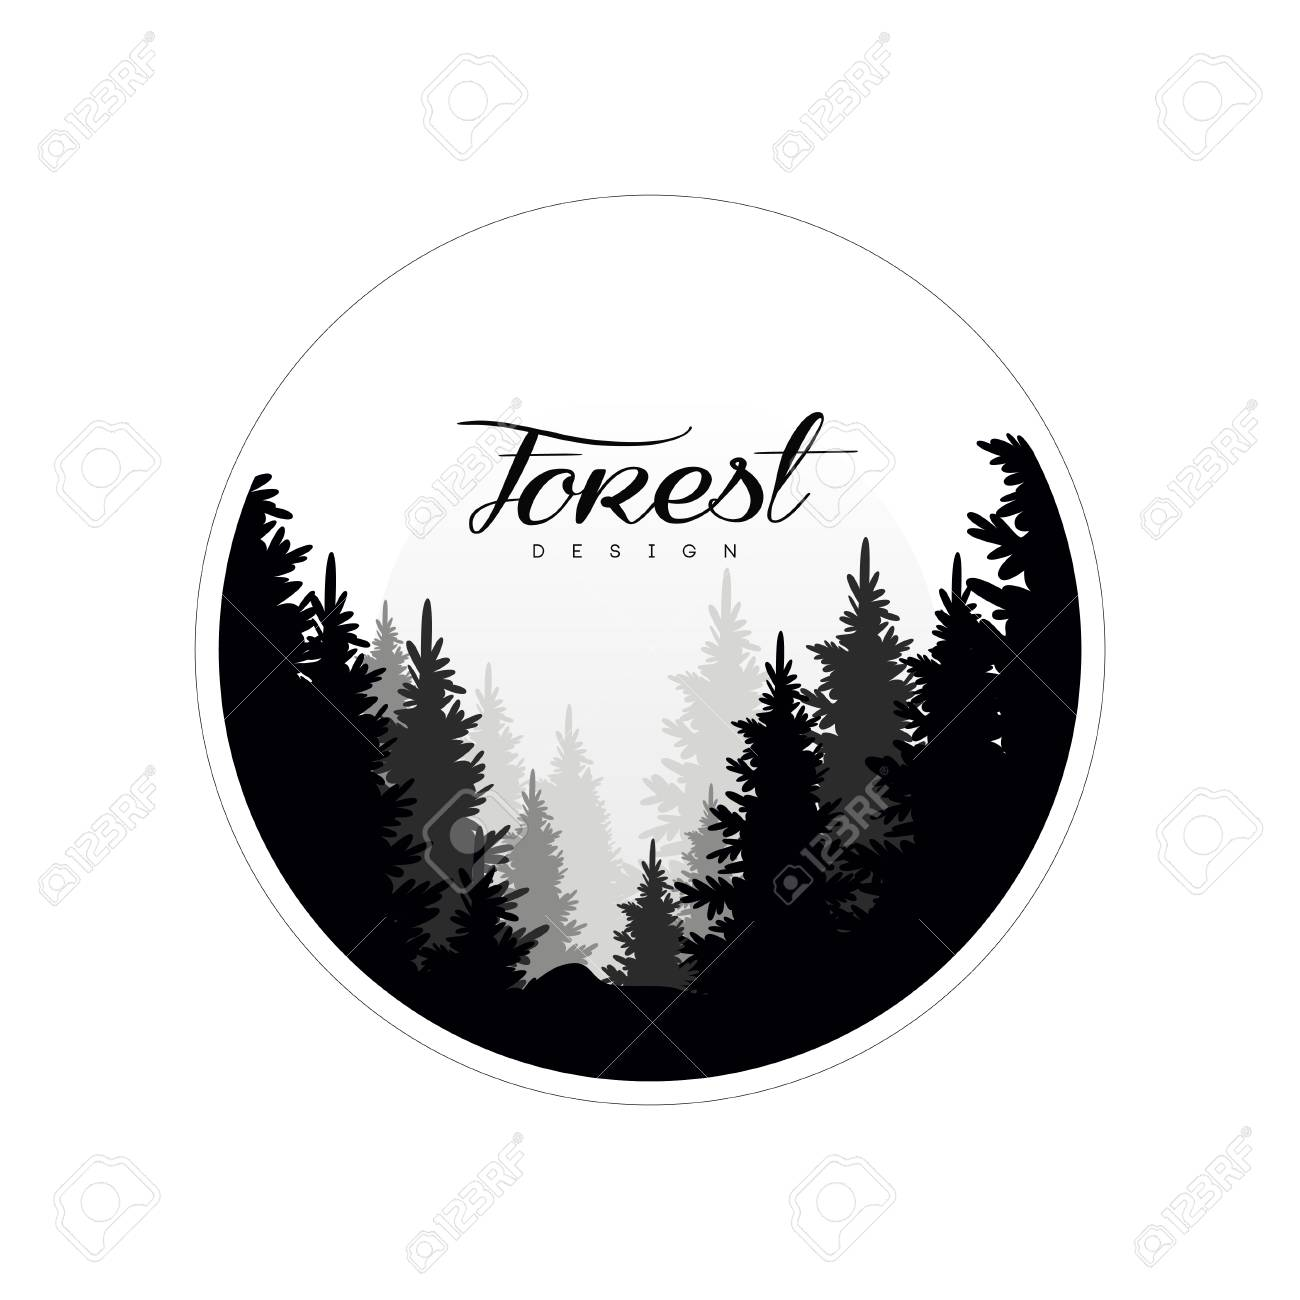 Forest logo design template, beautiful nature landscape with silhouettes of forest coniferous trees in fog, natural scene icon in geometric round shaped design, vector illustration - 96059549